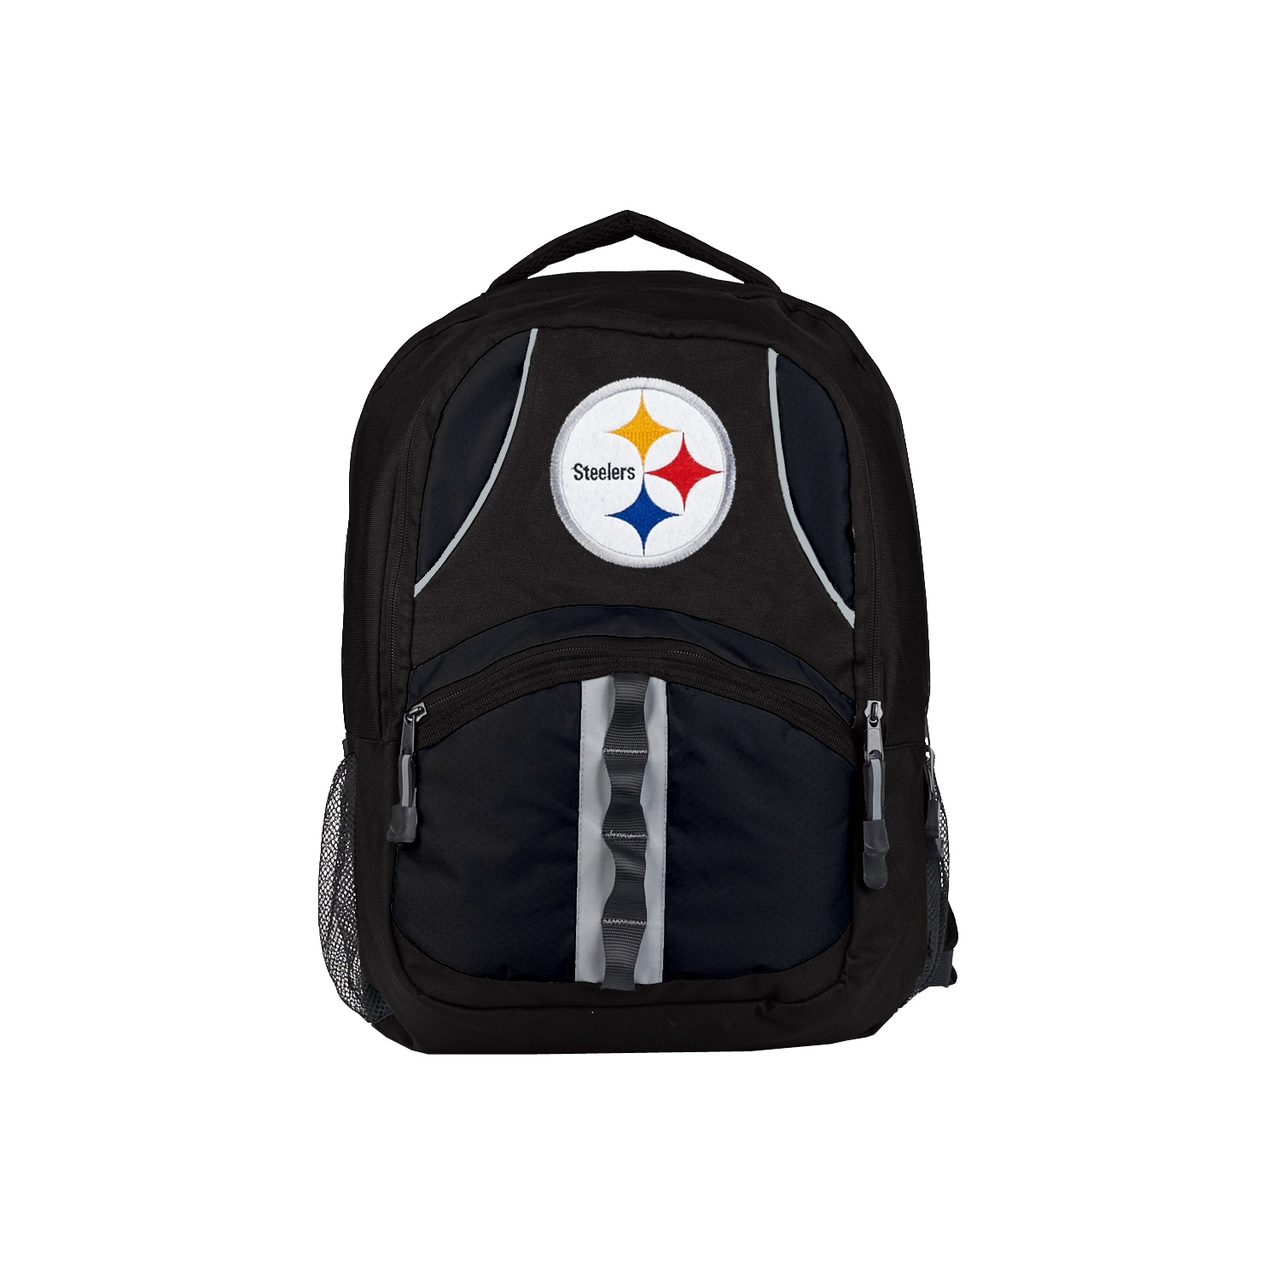 Pittsburgh Steelers Backpack Captain Style Black And Black - 8791890654 - Nfl Football Pittsburgh Steelers Tumblers And Pint Glasses 8791890654